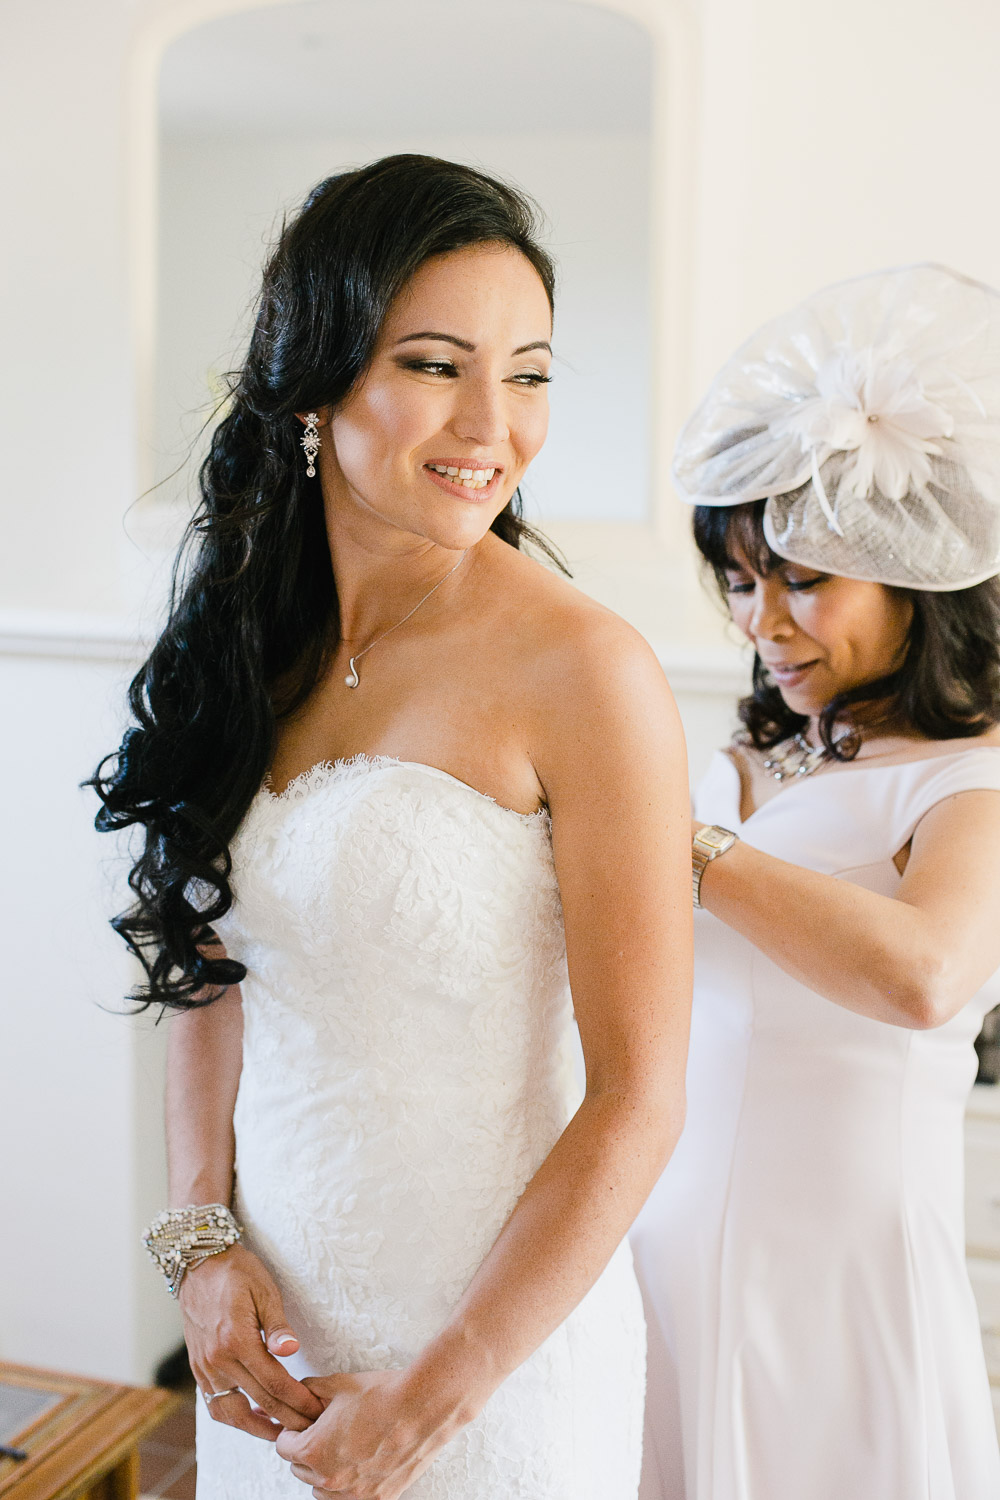 bride getting dressed at Dorney Court wedding venue